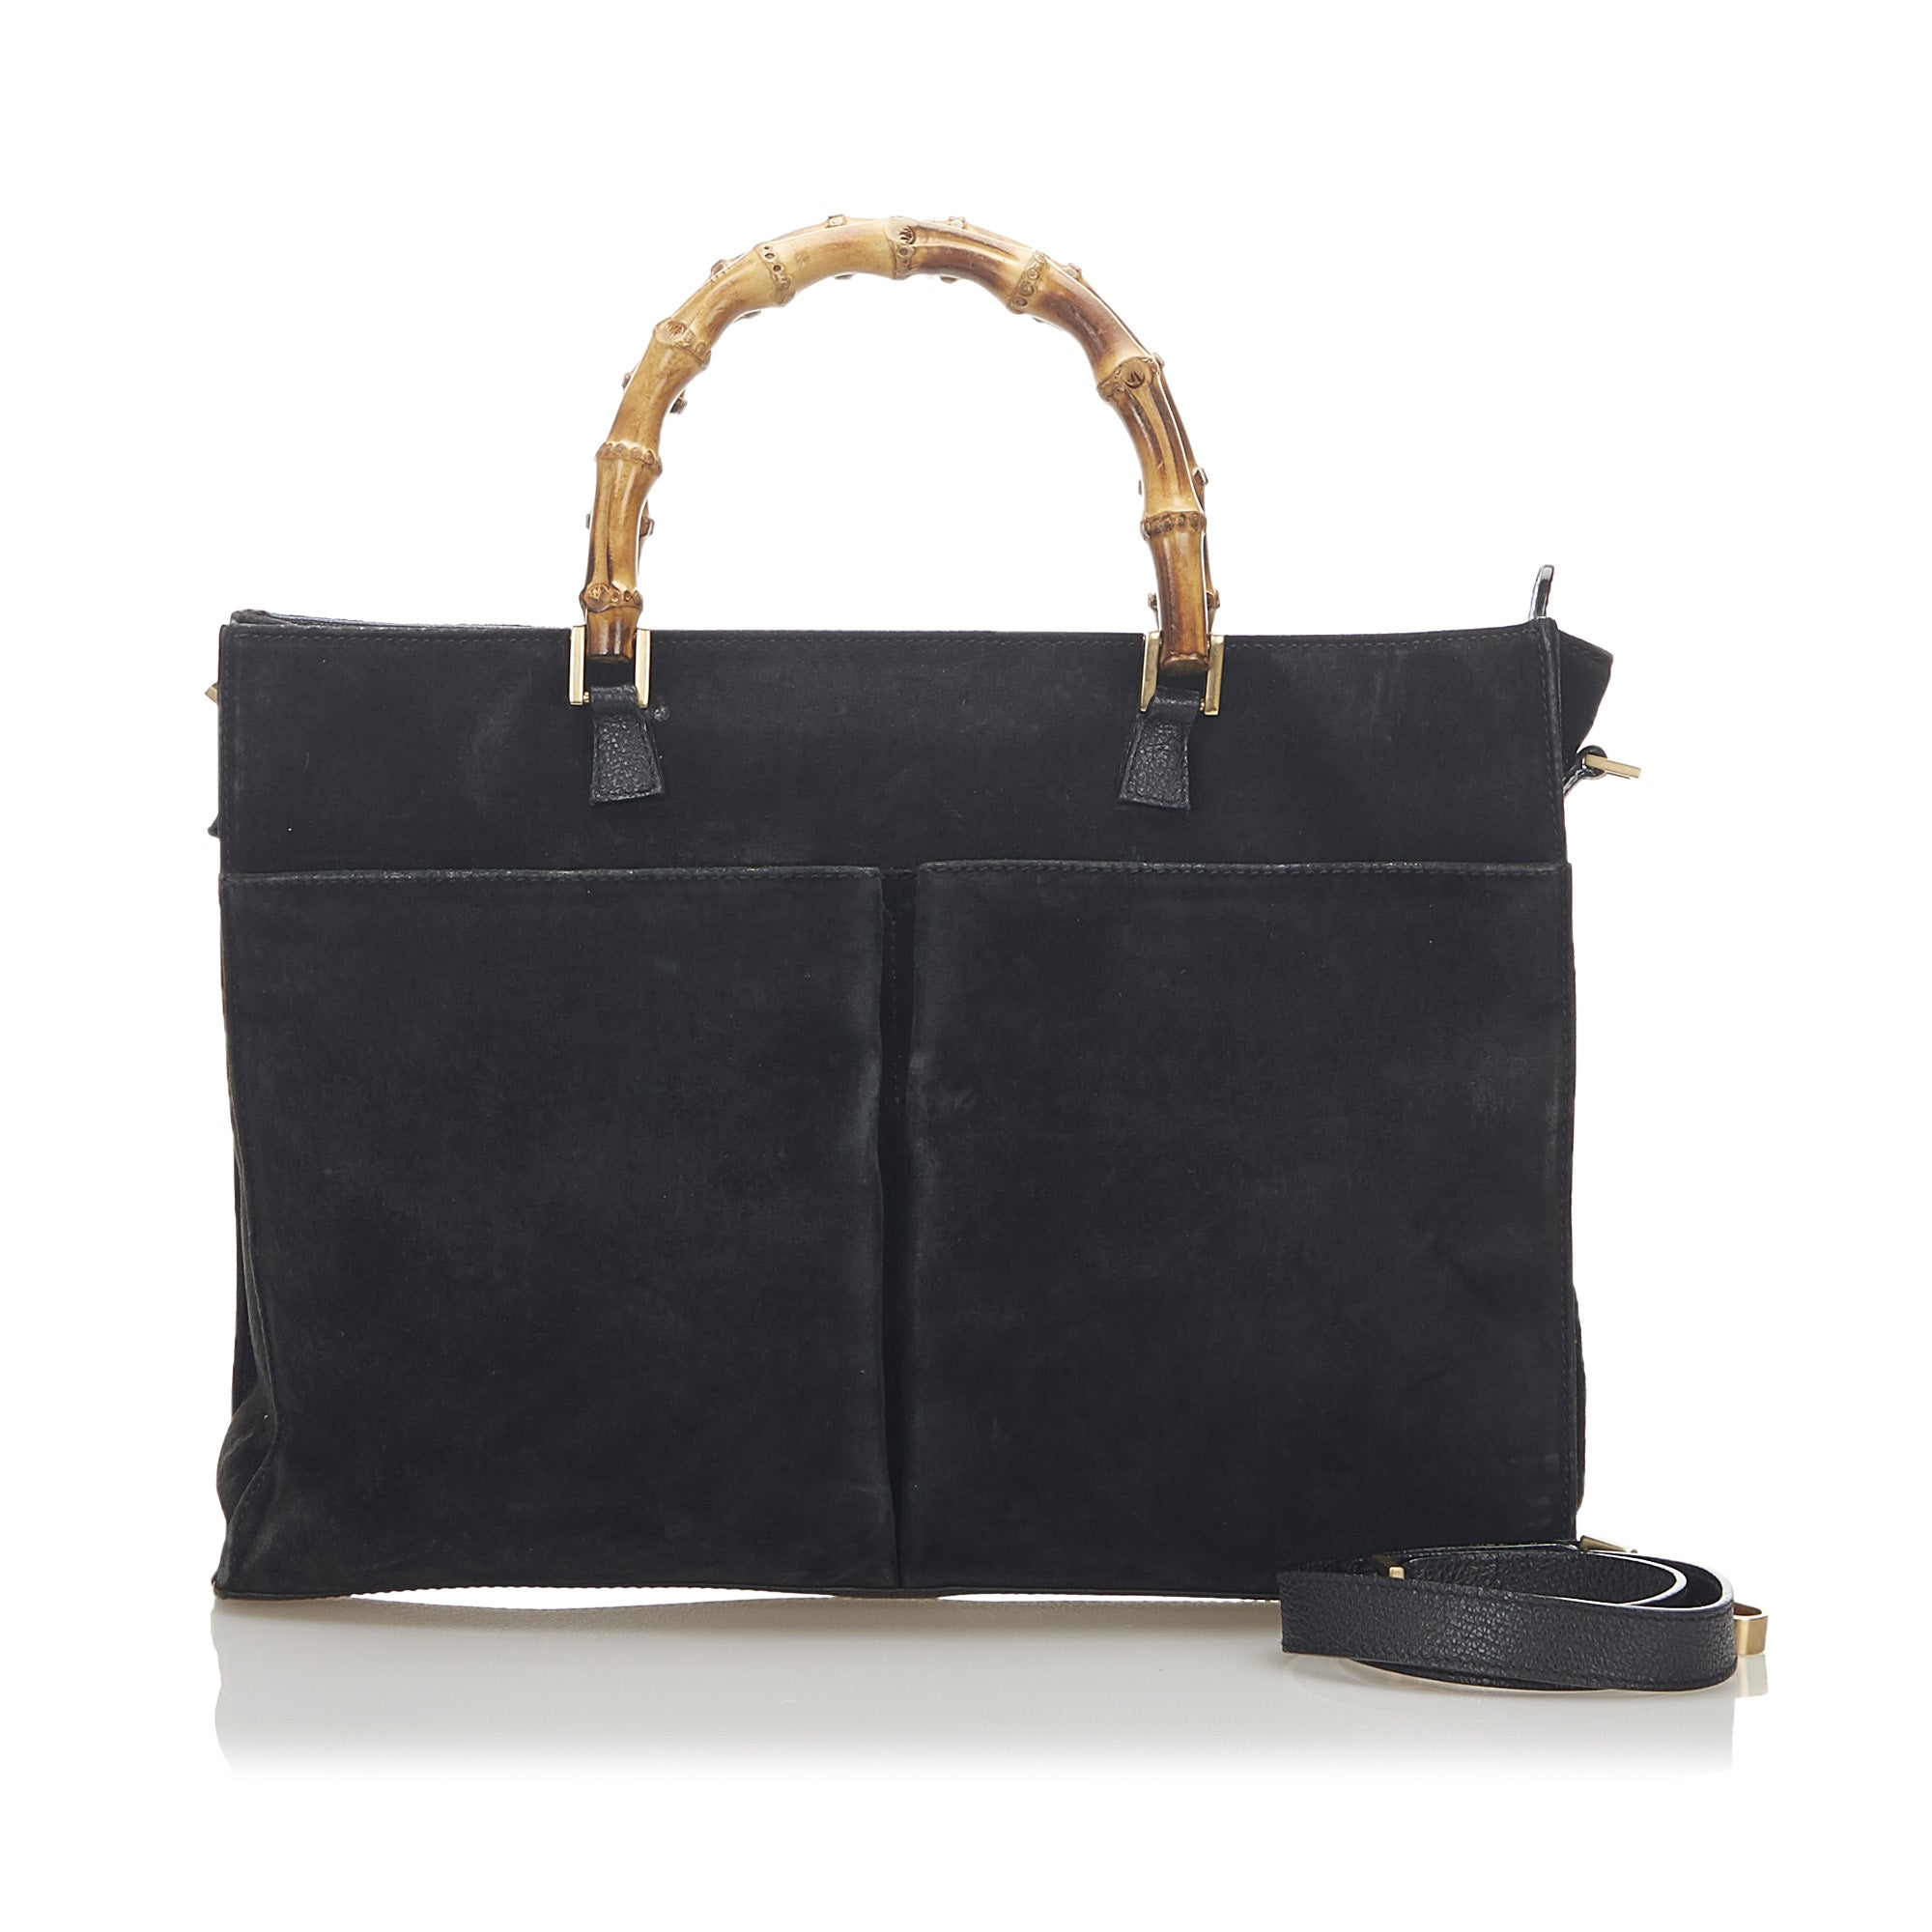 Gucci Black Bamboo Suede Satchel